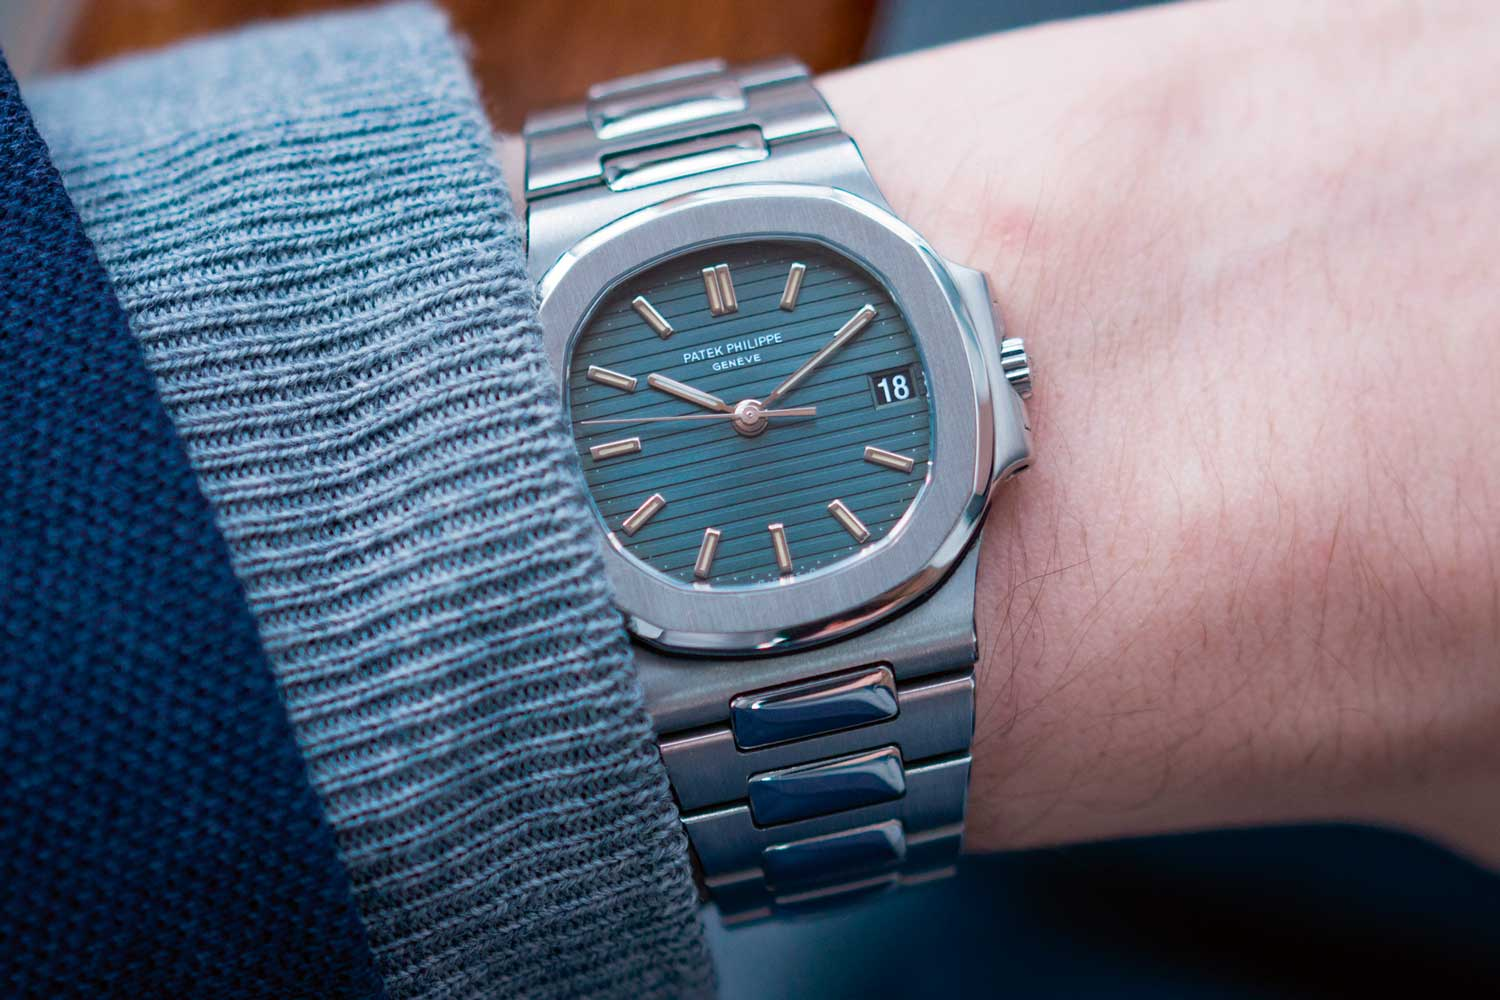 The mid-sized Nautilus 3800/1A launched in 1981 with a new in-house movement, marking the end of the calibre 28-255. (Image: A Collected Man)